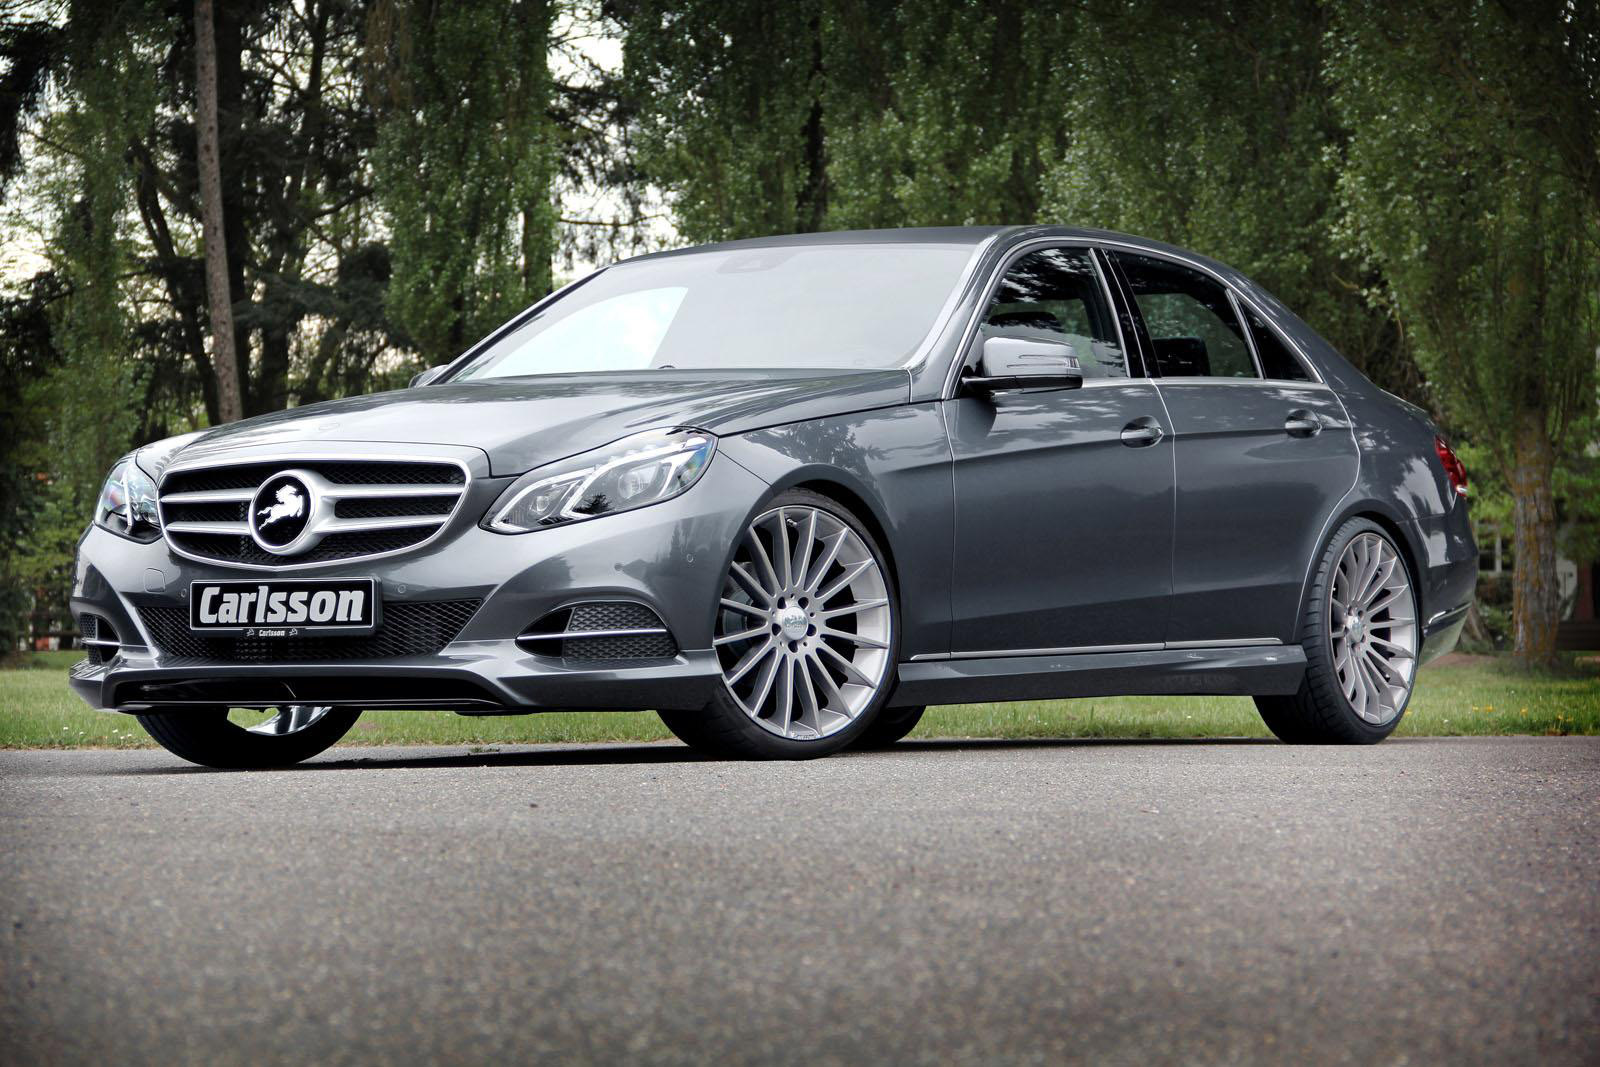 Carlsson 2014 mercedes benz e class w212 for 2014 mercedes benz e class e250 bluetec sedan review